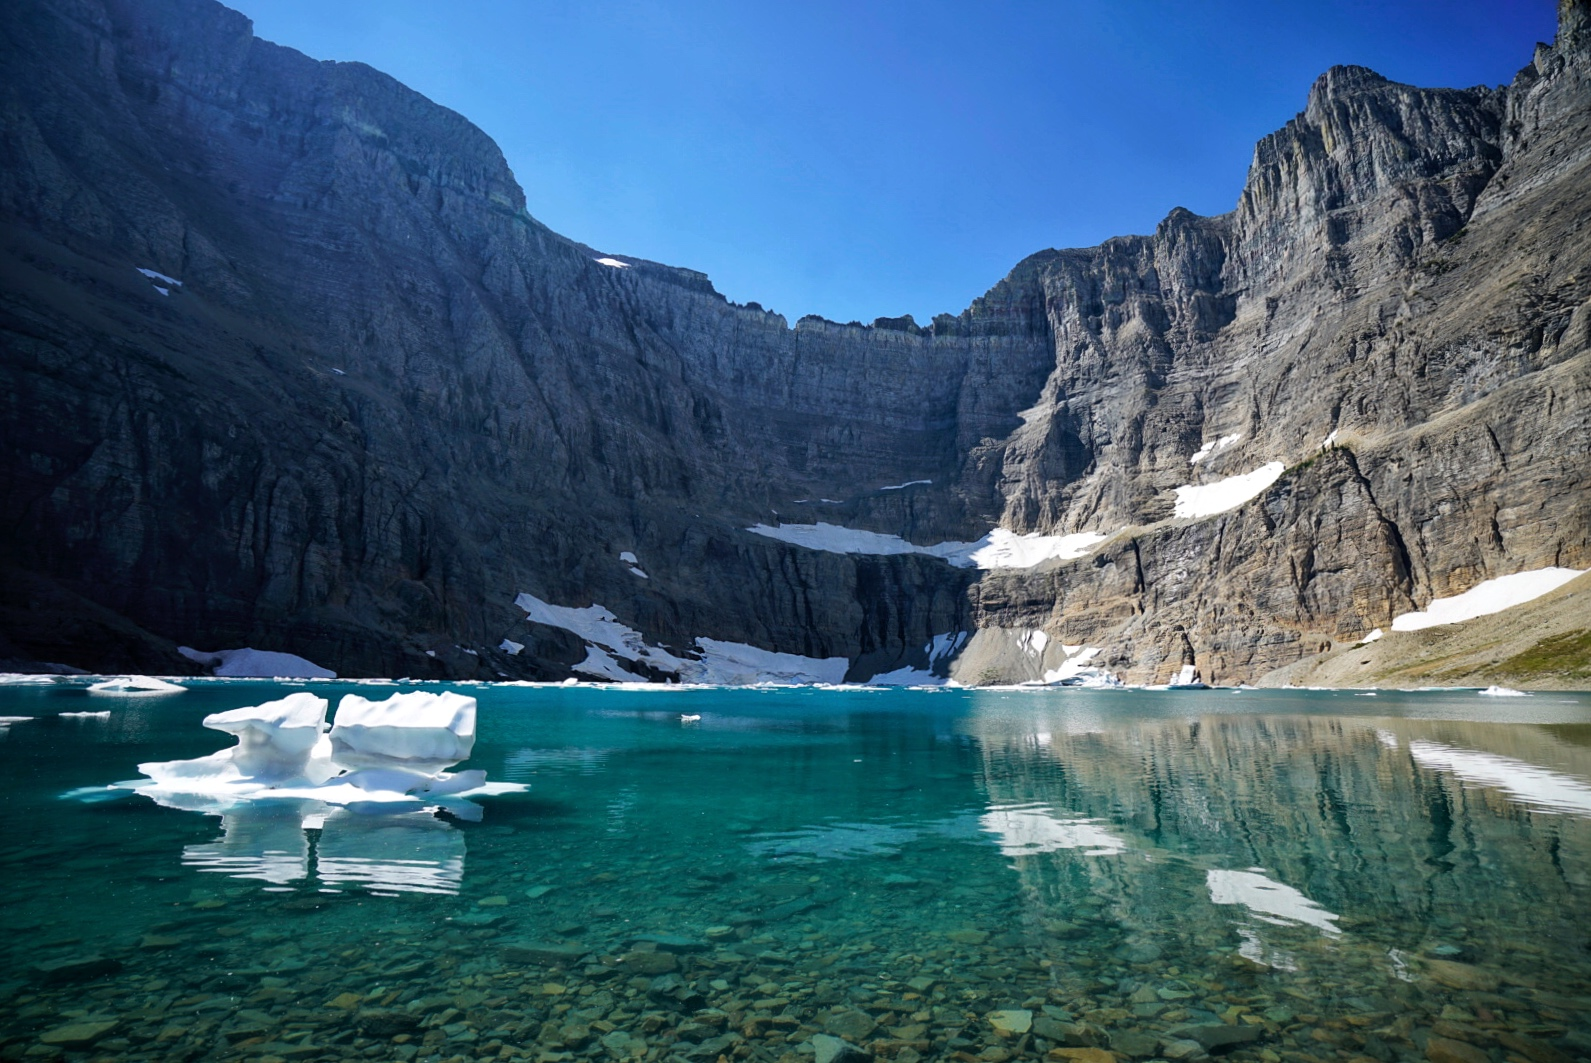 Iceberg Lake lives up to its name. It was 39 degrees F when I jumped in.